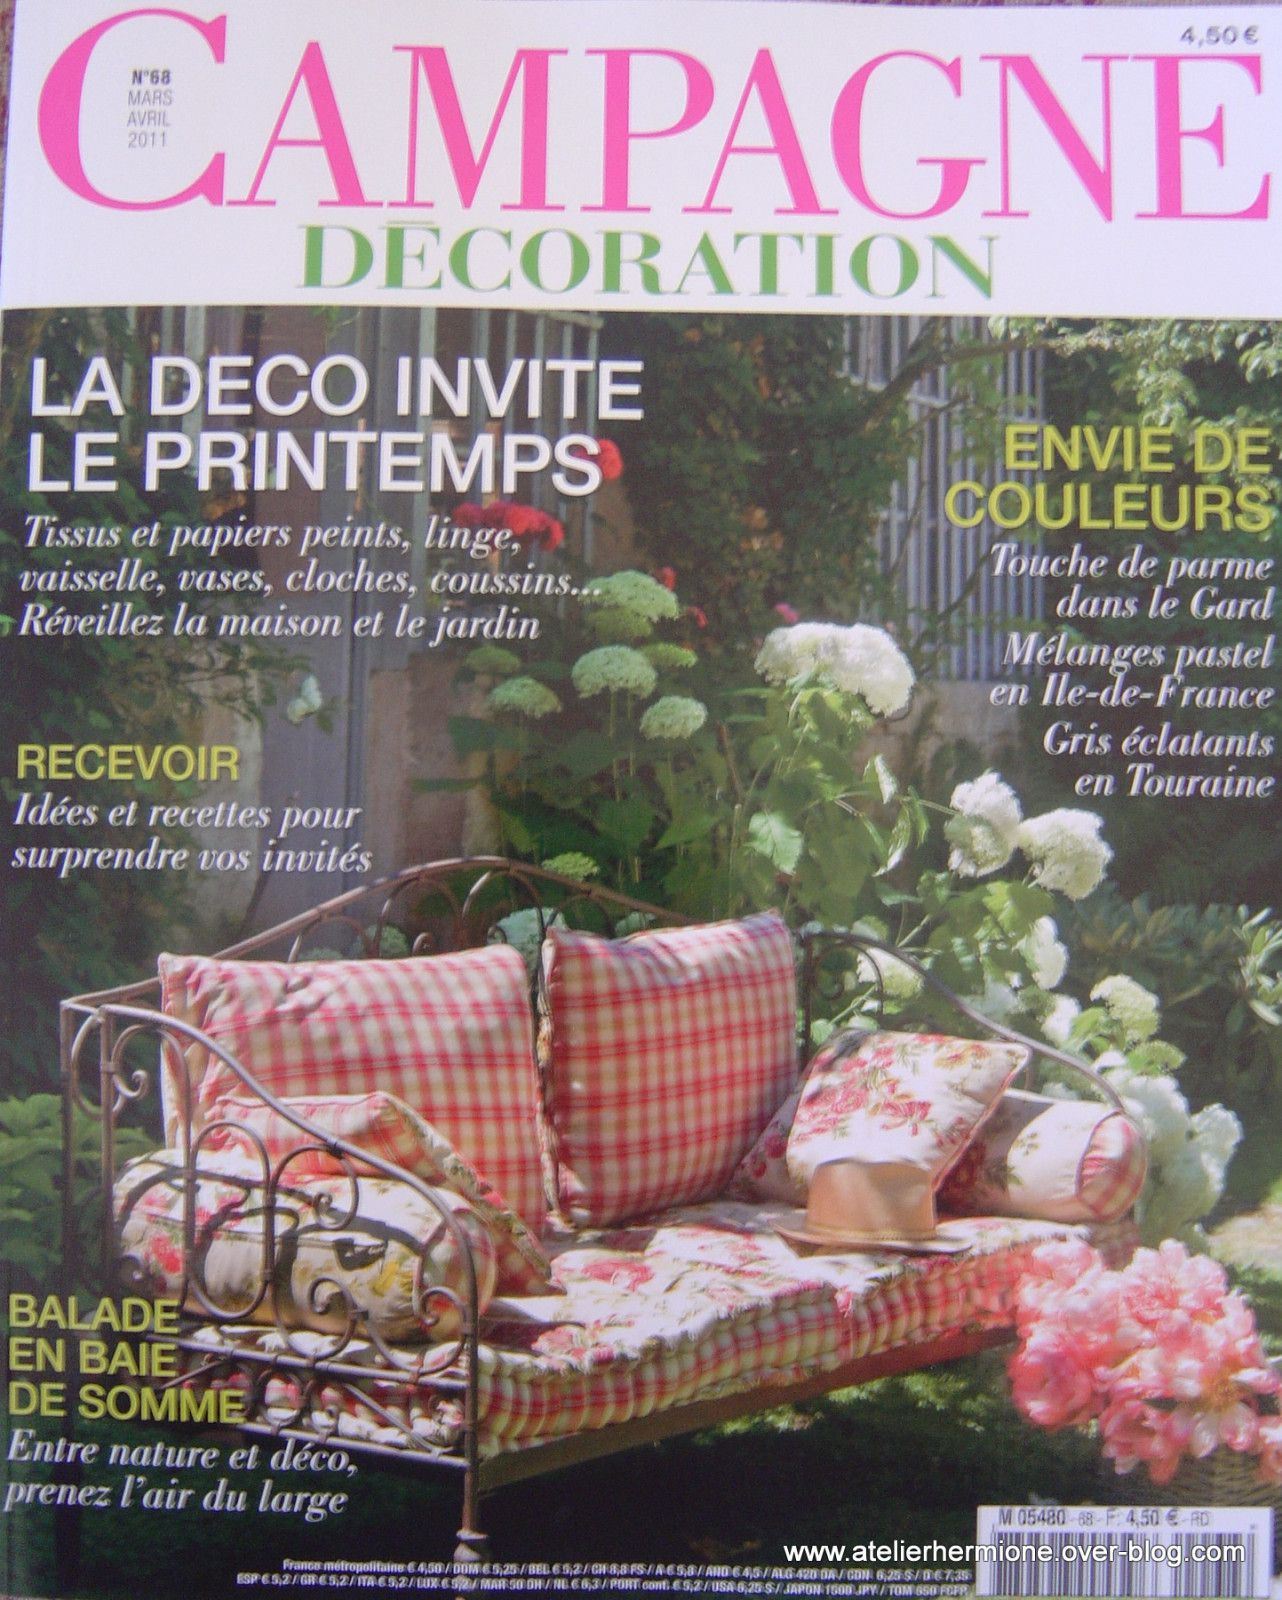 Campagne d coration n 68 atelier hermione for Campagne decoration